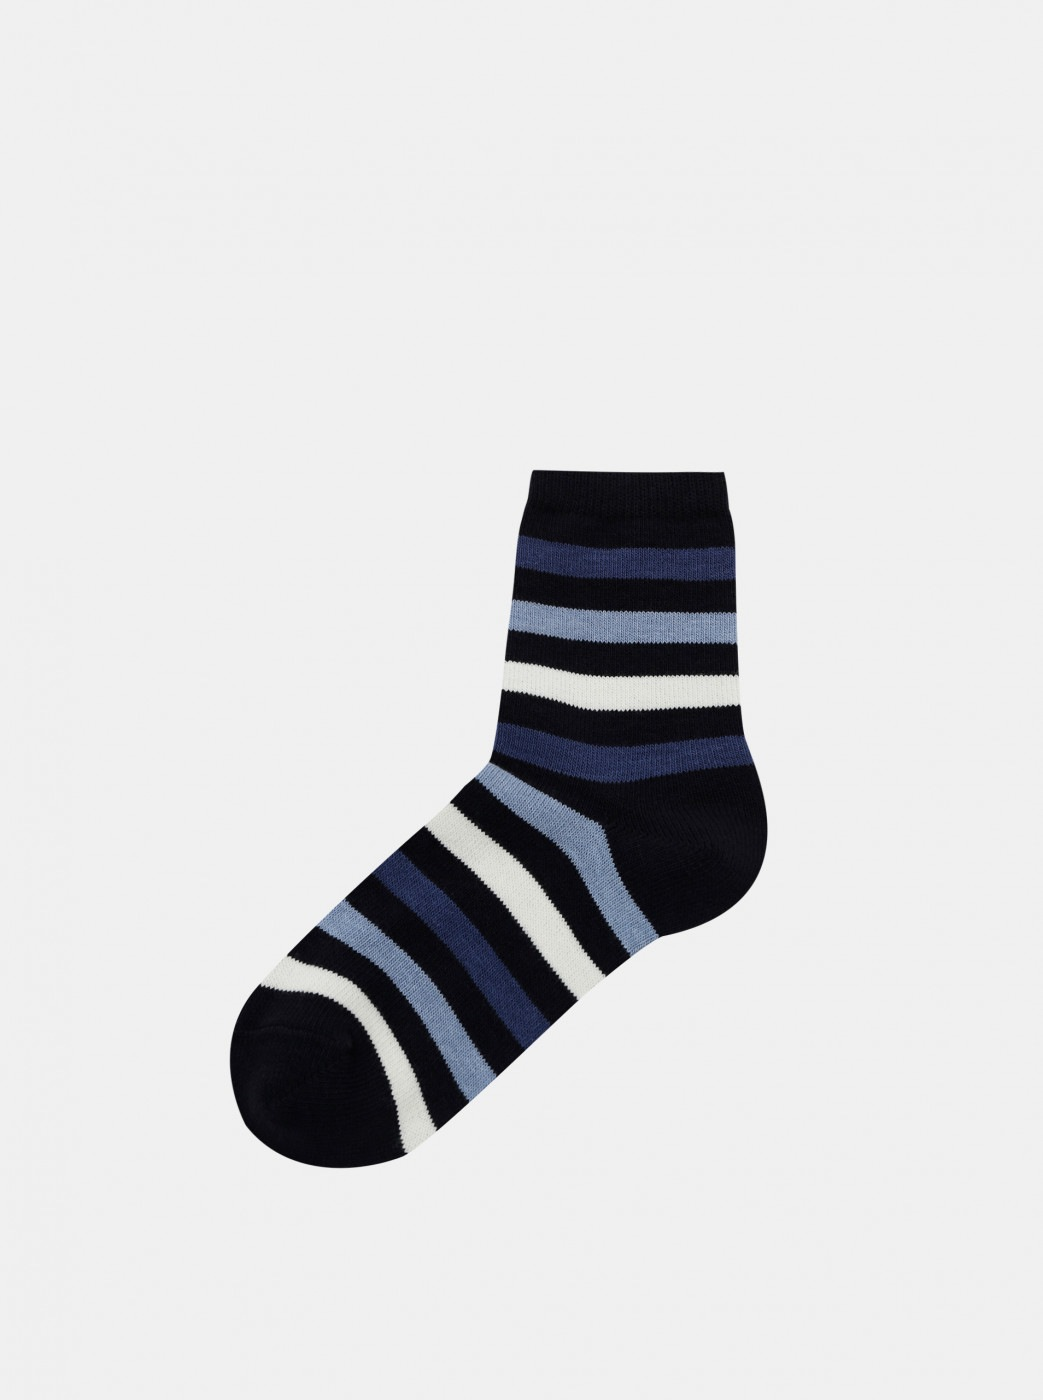 Marie Claire Blue Striped Socks